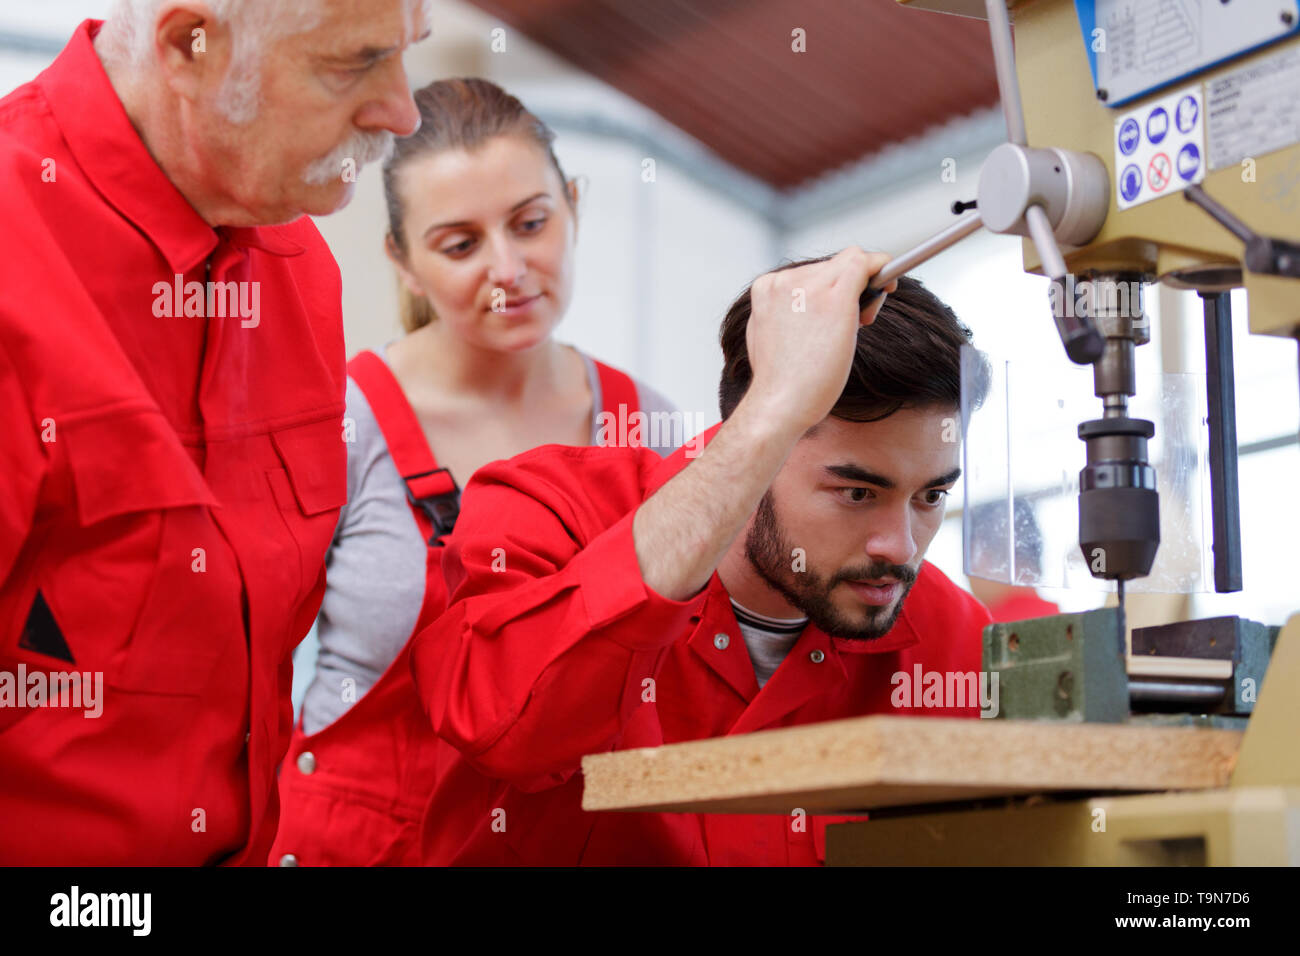 apprentice drilling a hole using a machine - Stock Image